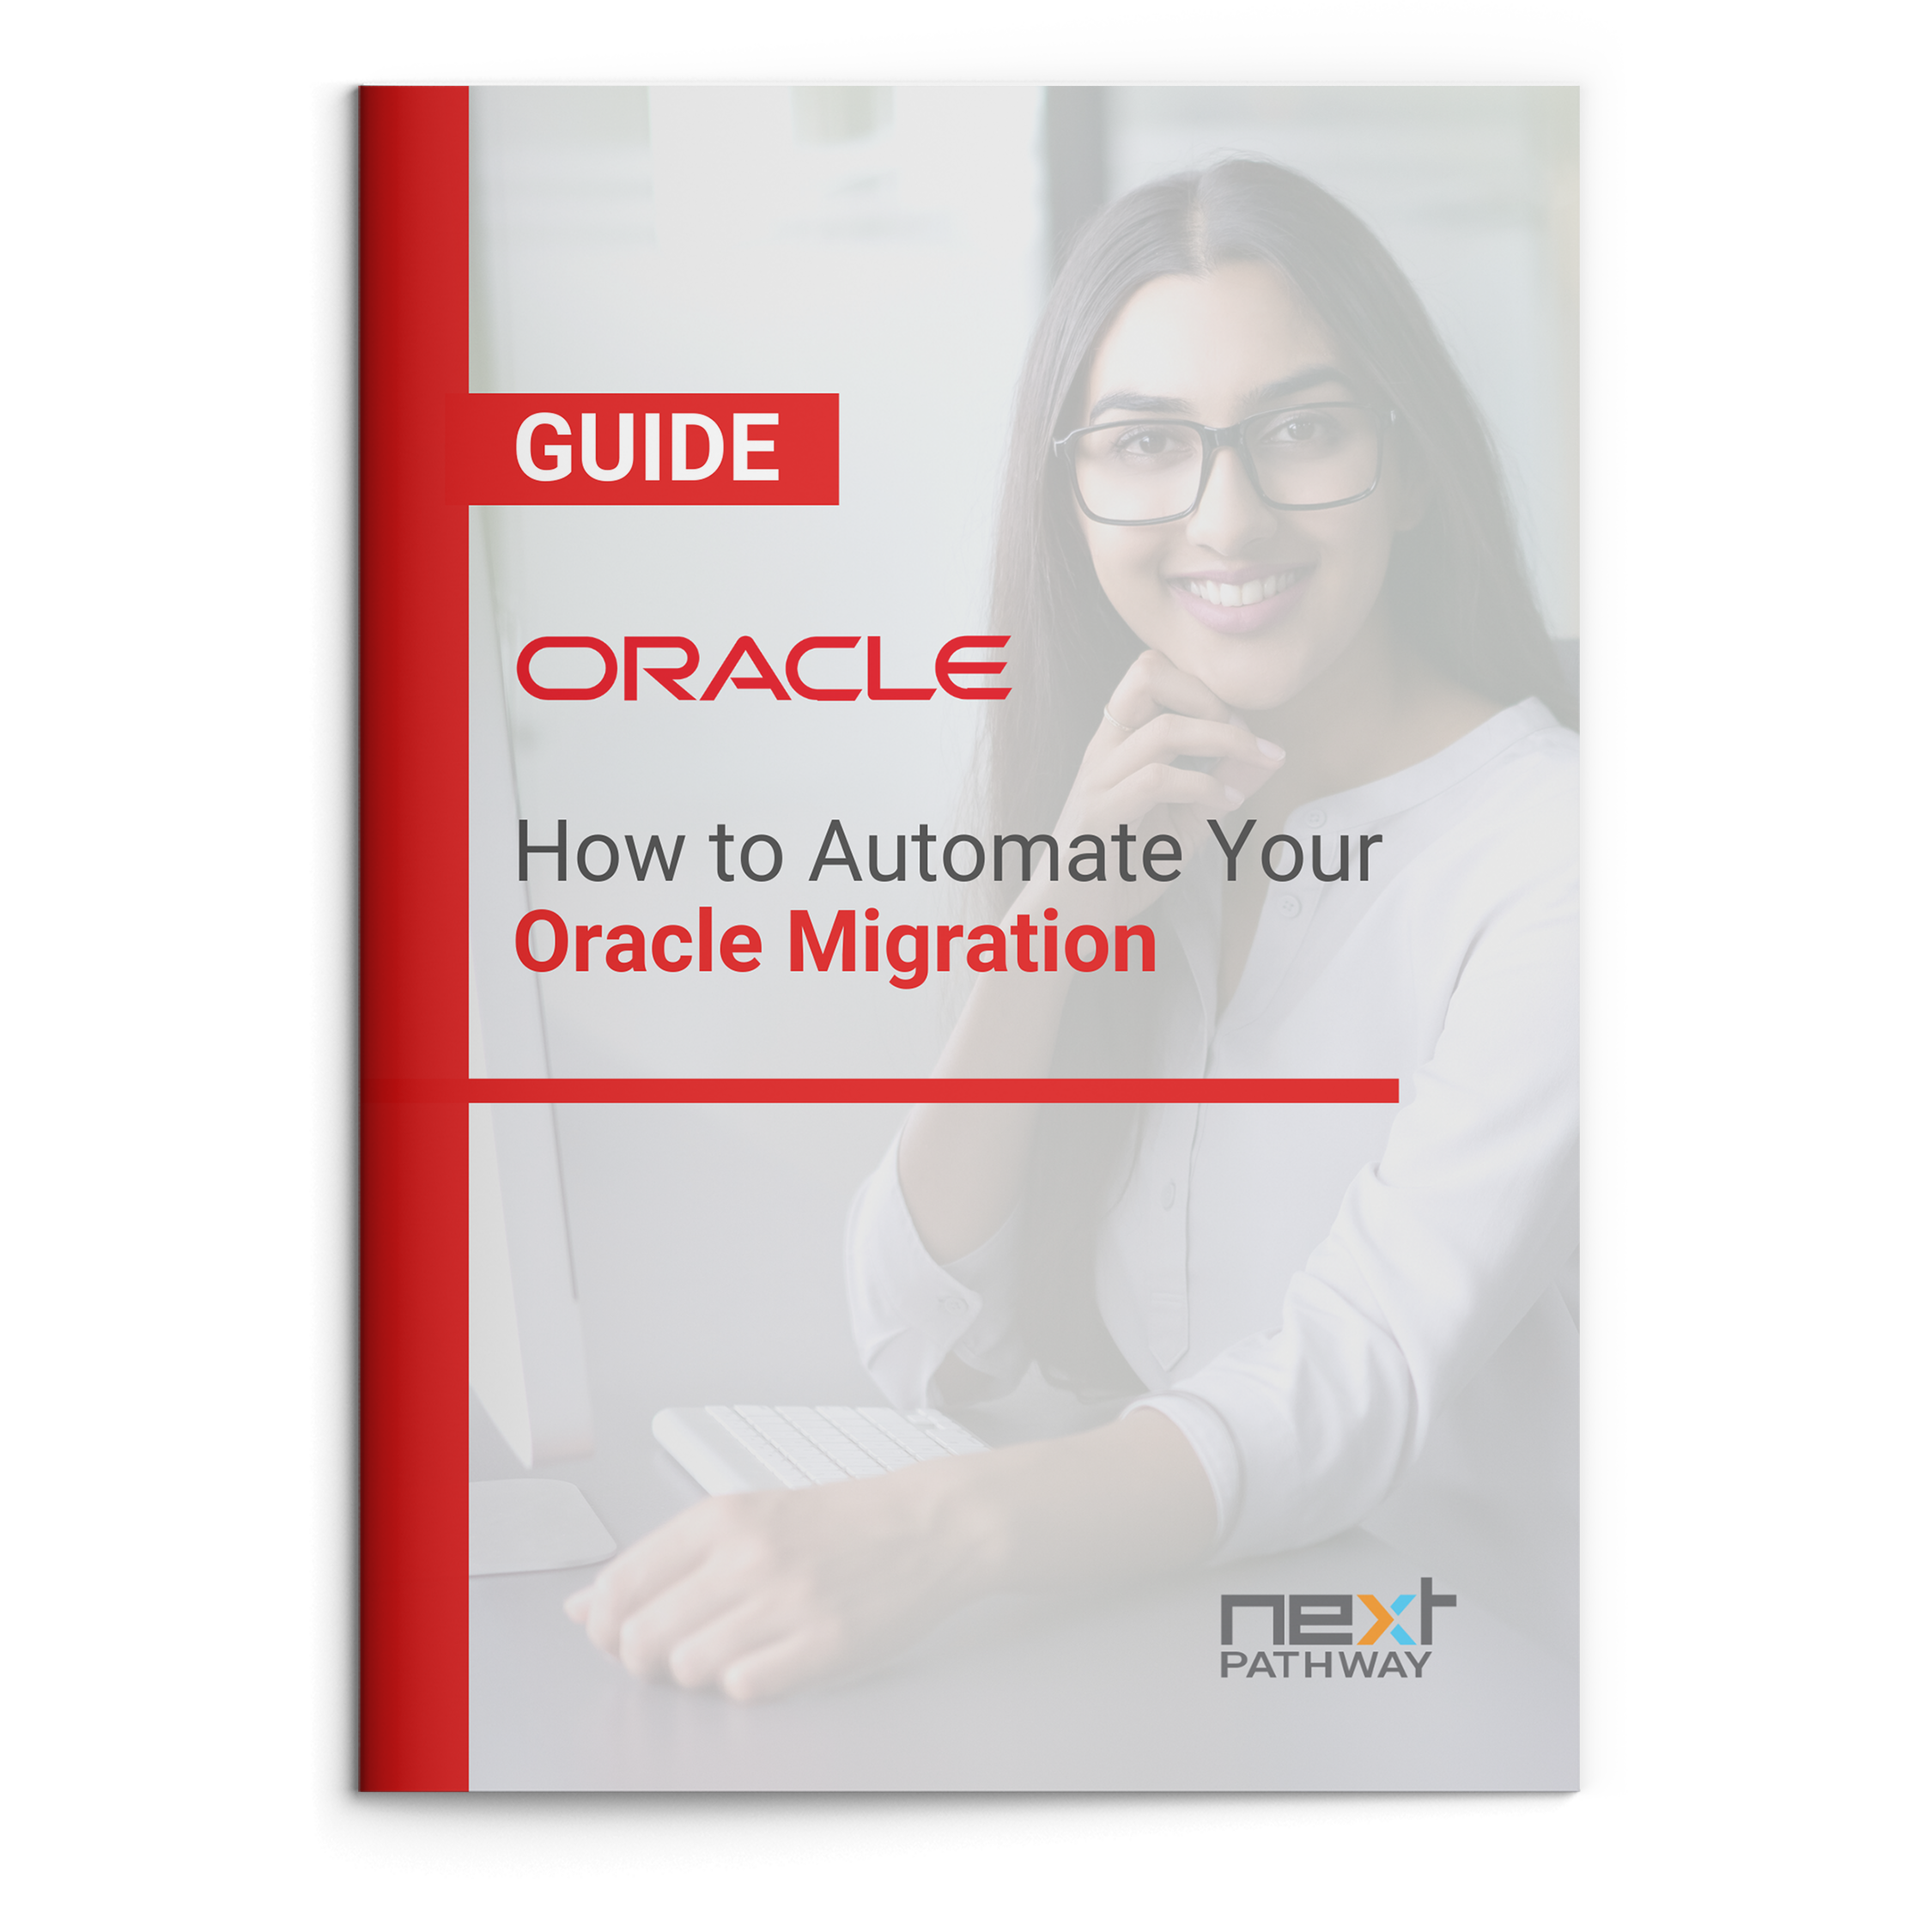 How to Automate Your Oracle Migration